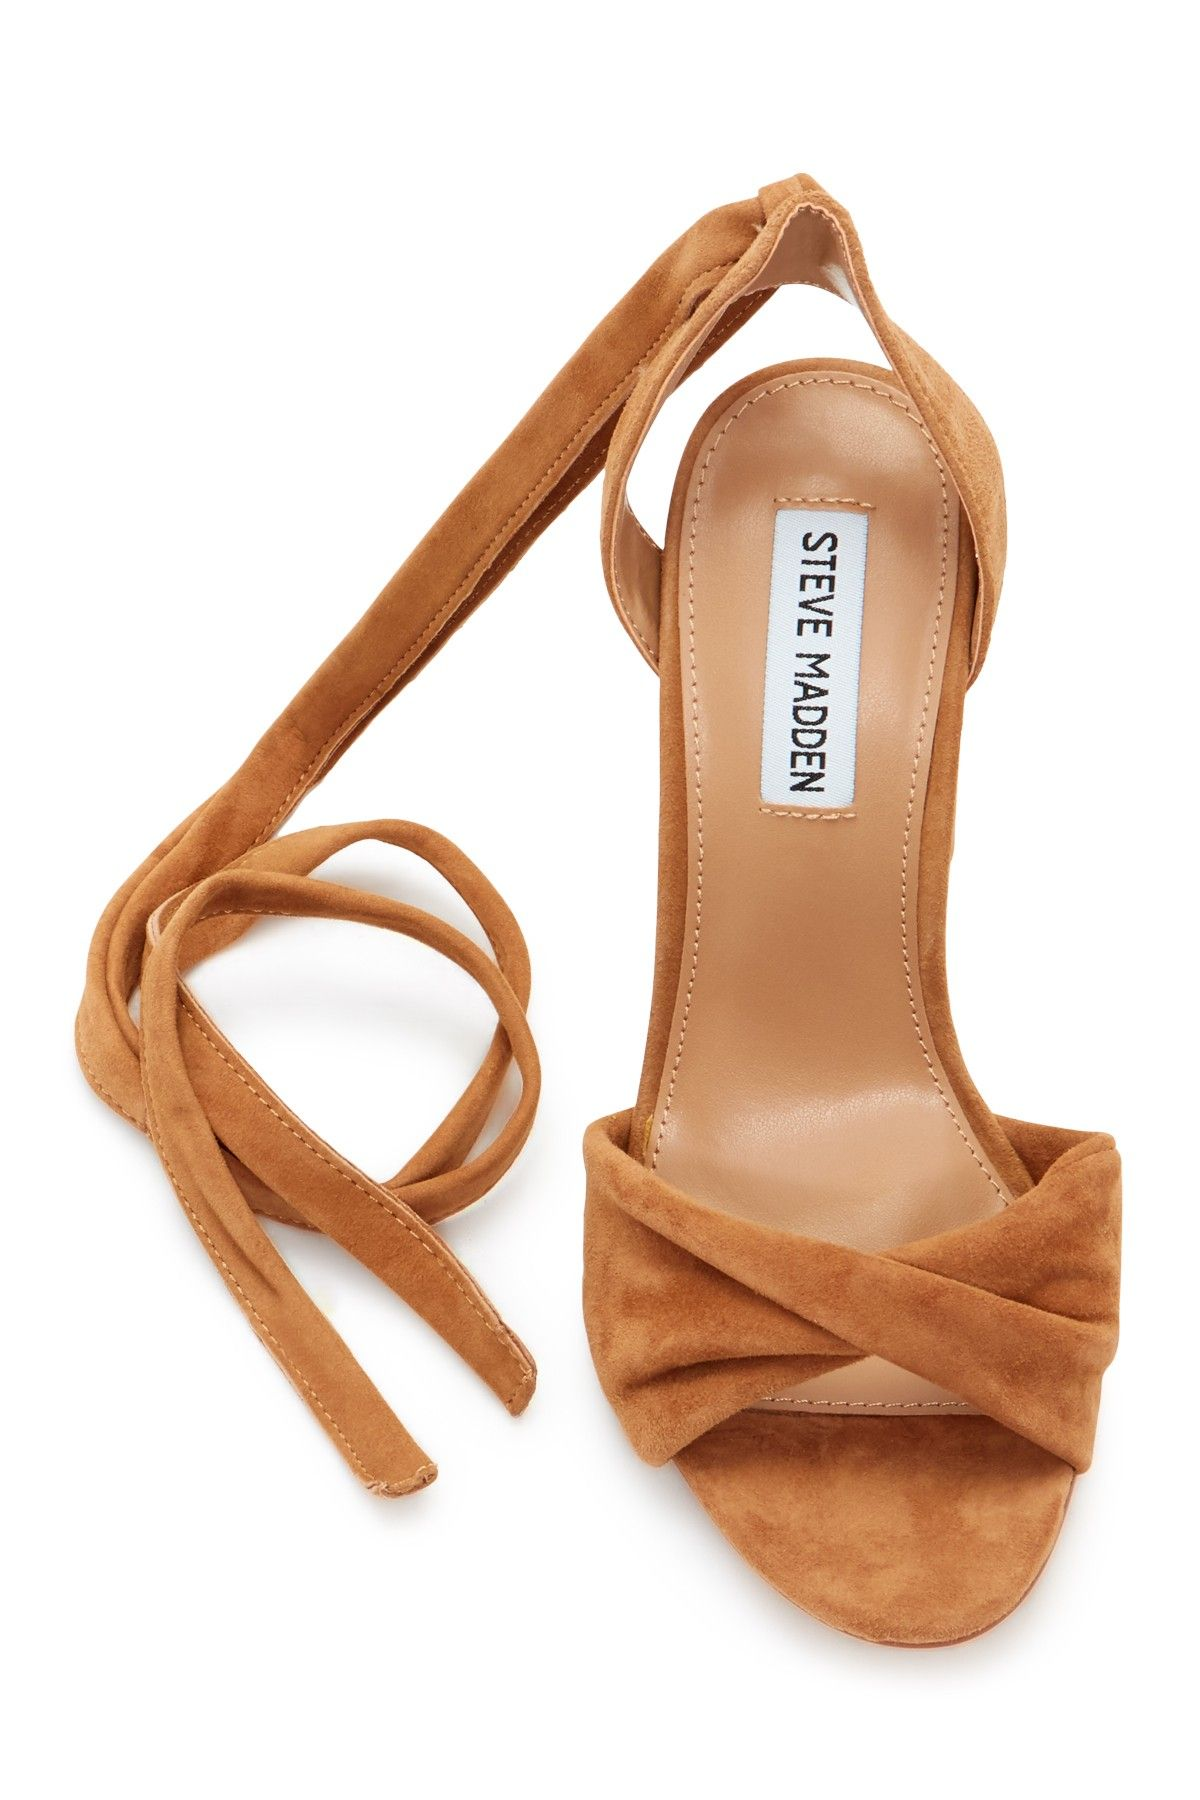 4b275f0f5da Steve Madden - Clary Ballerina Heel is now 67% off. Free Shipping on orders  over  100.